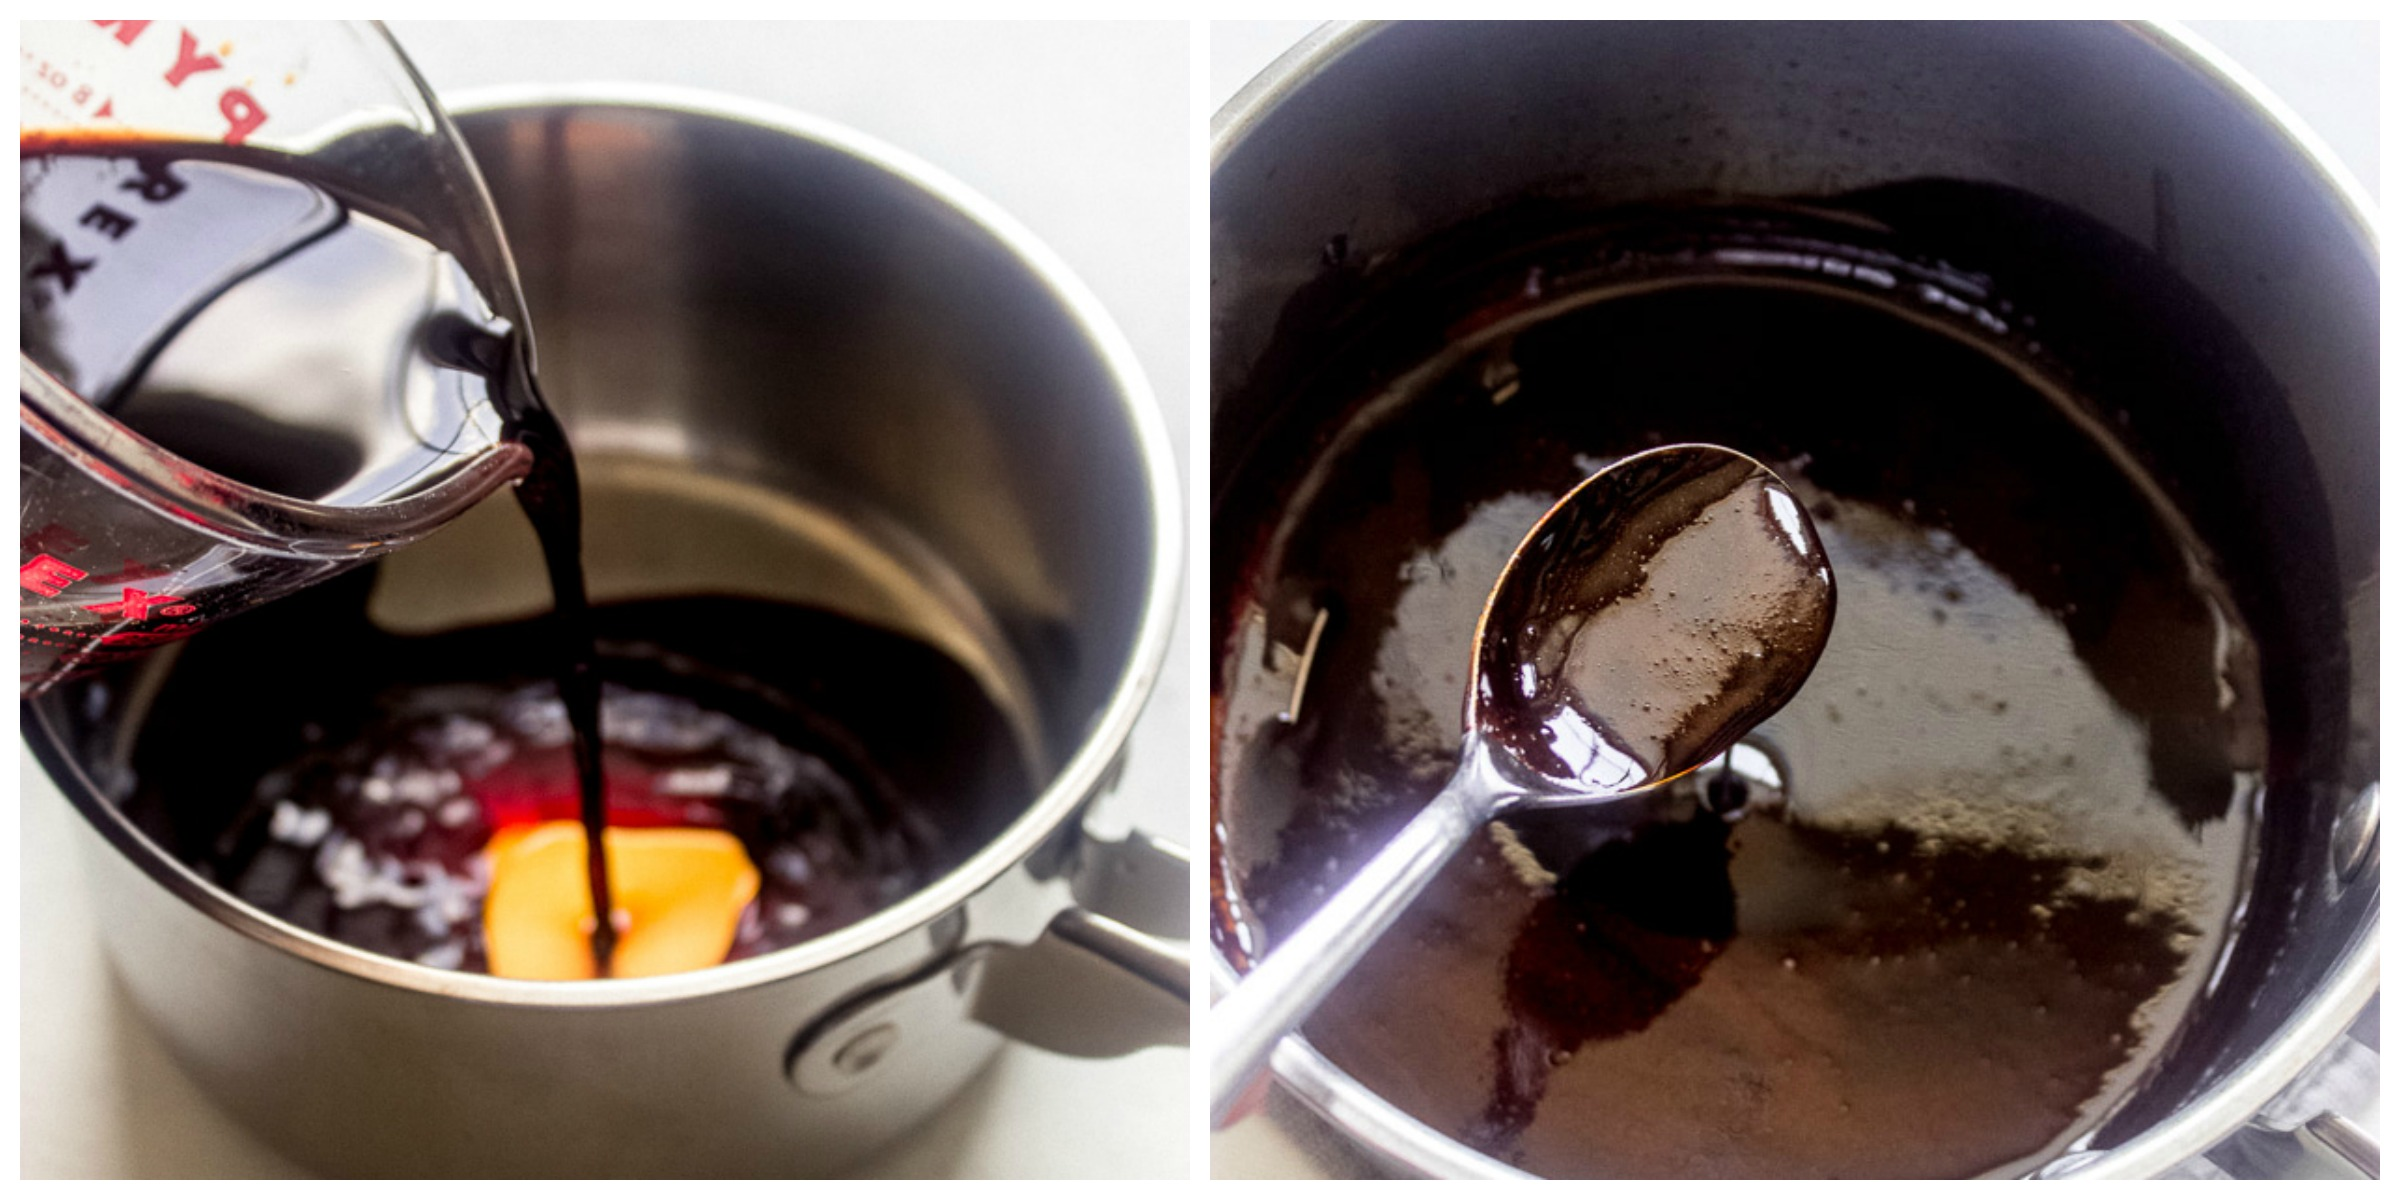 Step by step instructions on how to make balsamic reduction